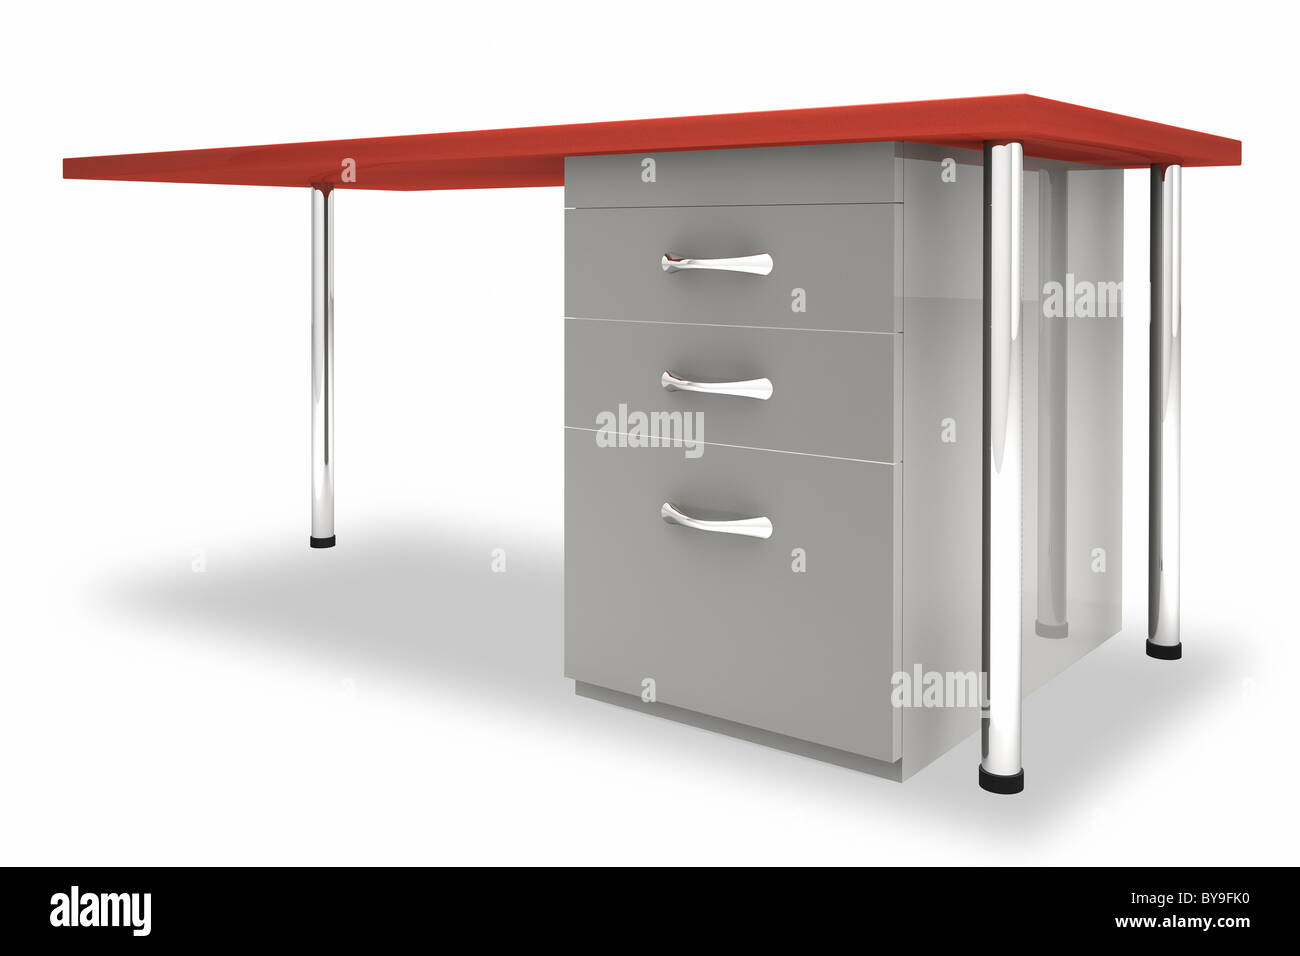 Desk against a white background - Stock Image